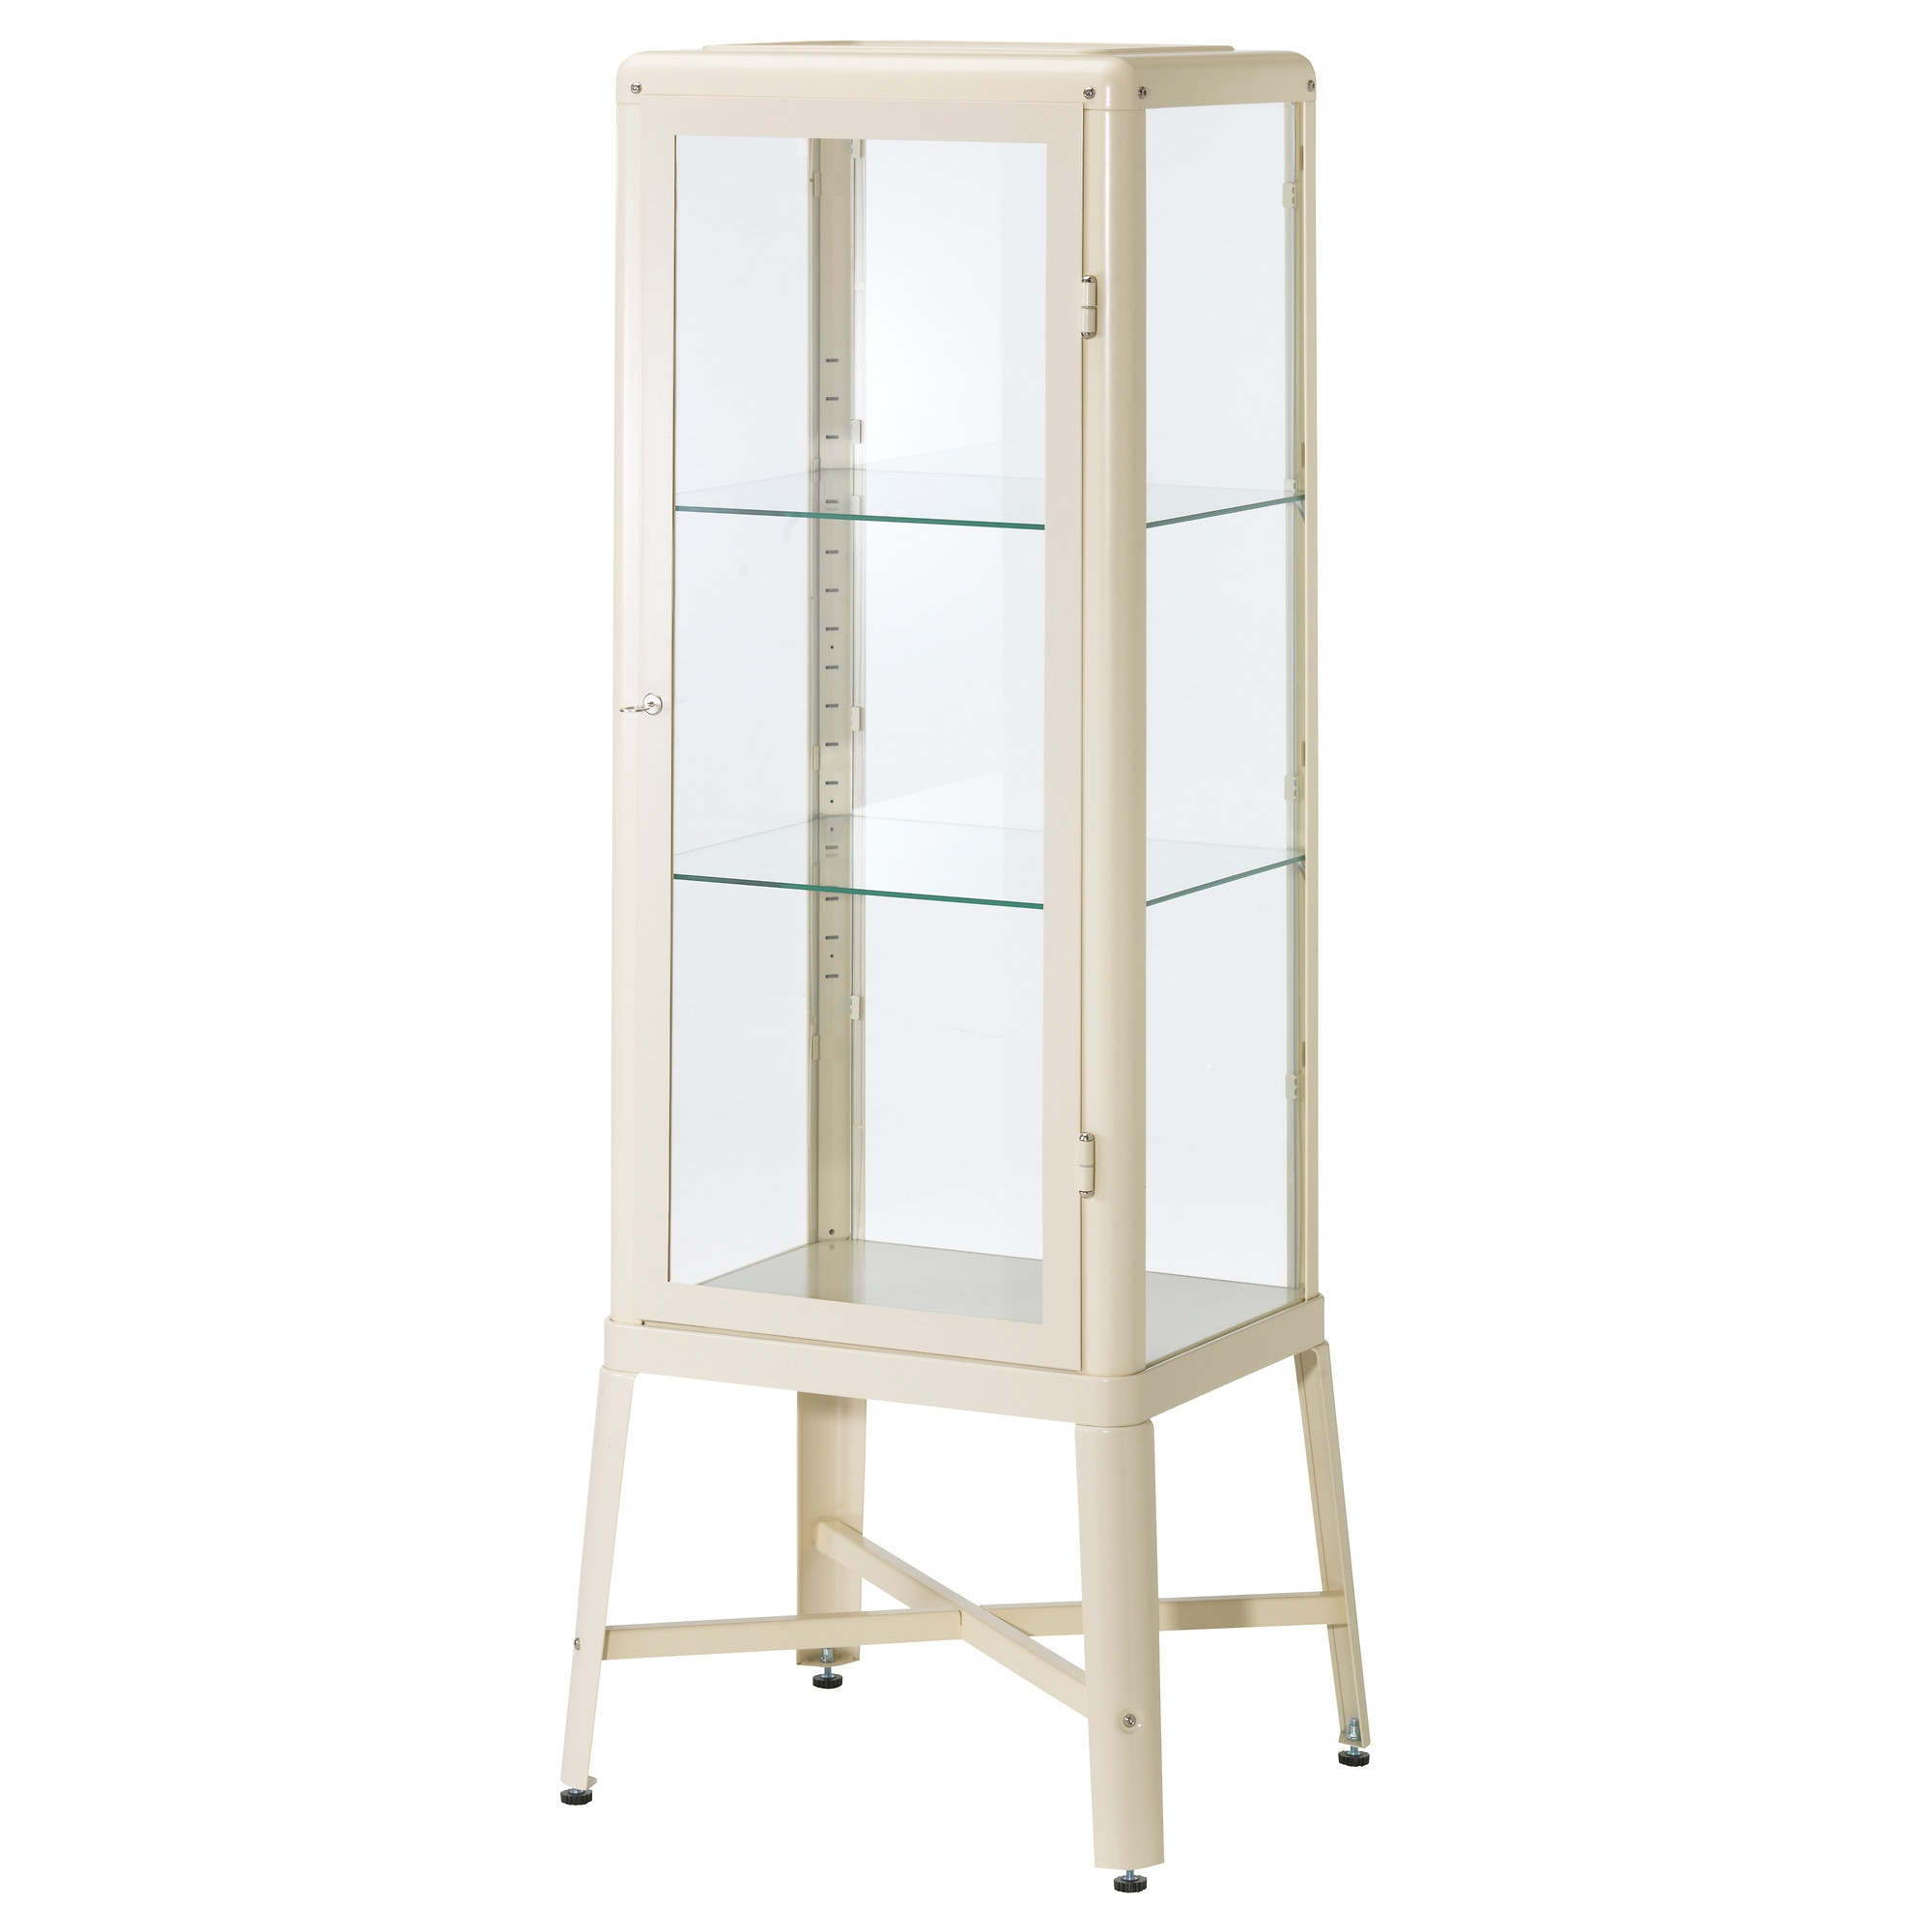 Fabrikr glass door cabinet beige ikea eventshaper